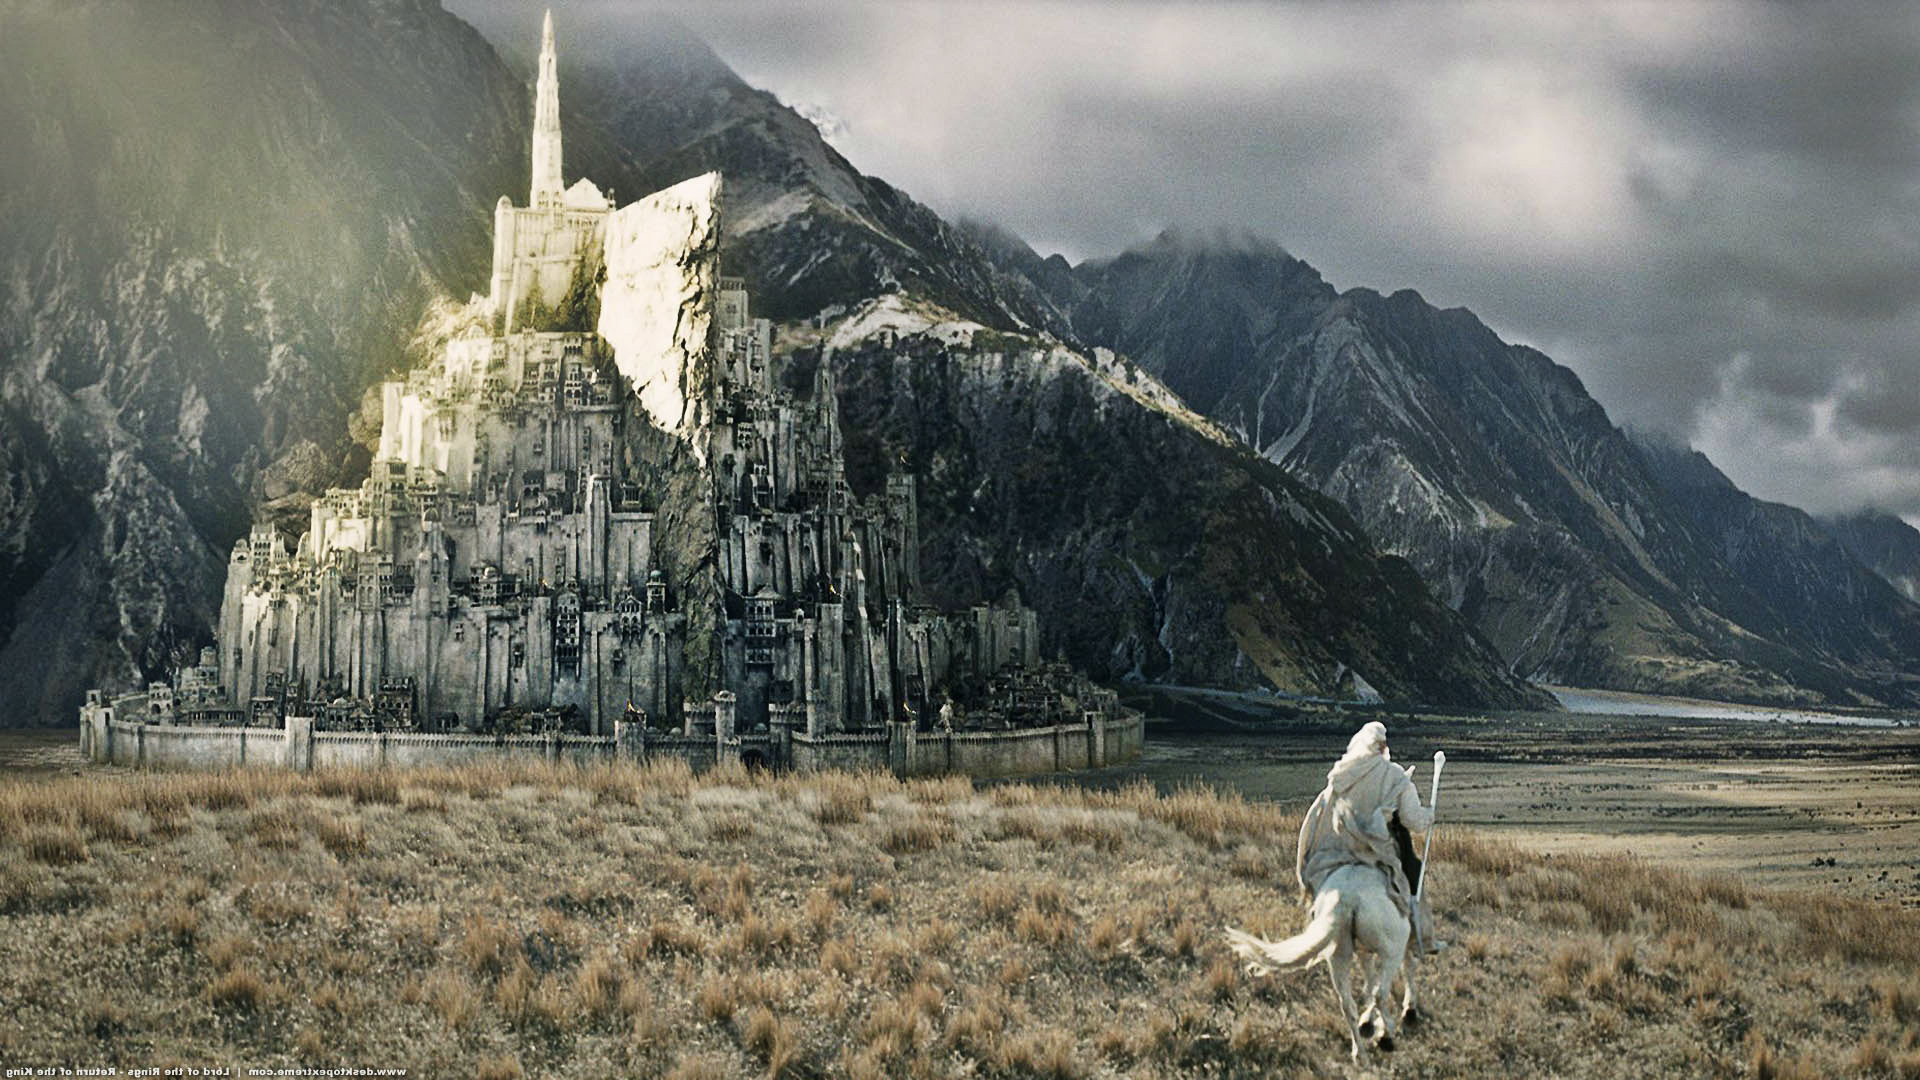 Lord Of The Rings wallpapers Hd Wallpapers 1920x1080